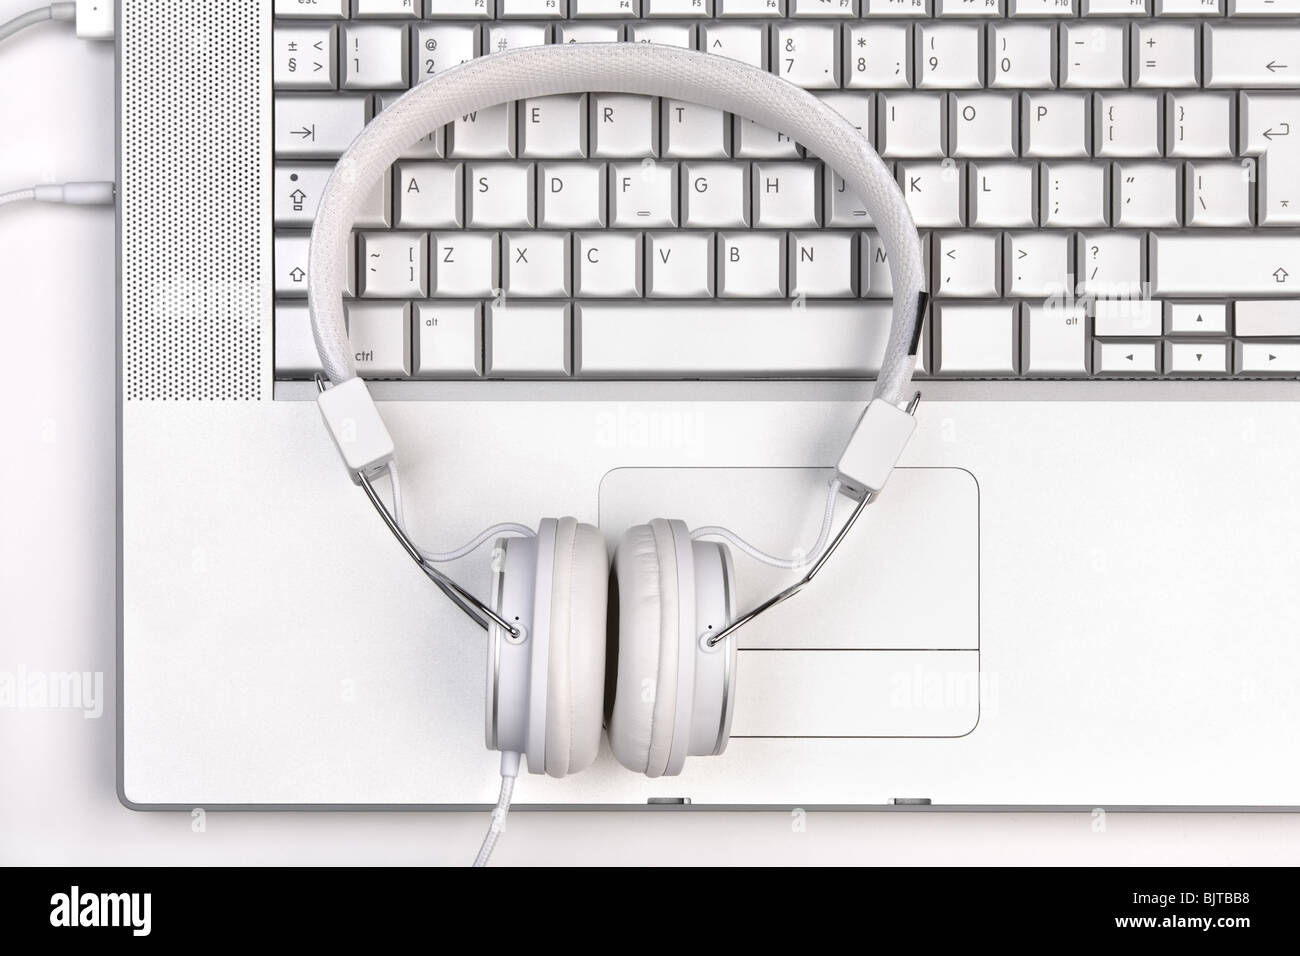 White elegance headphones on silver laptop keyboard. Top view. - Stock Image